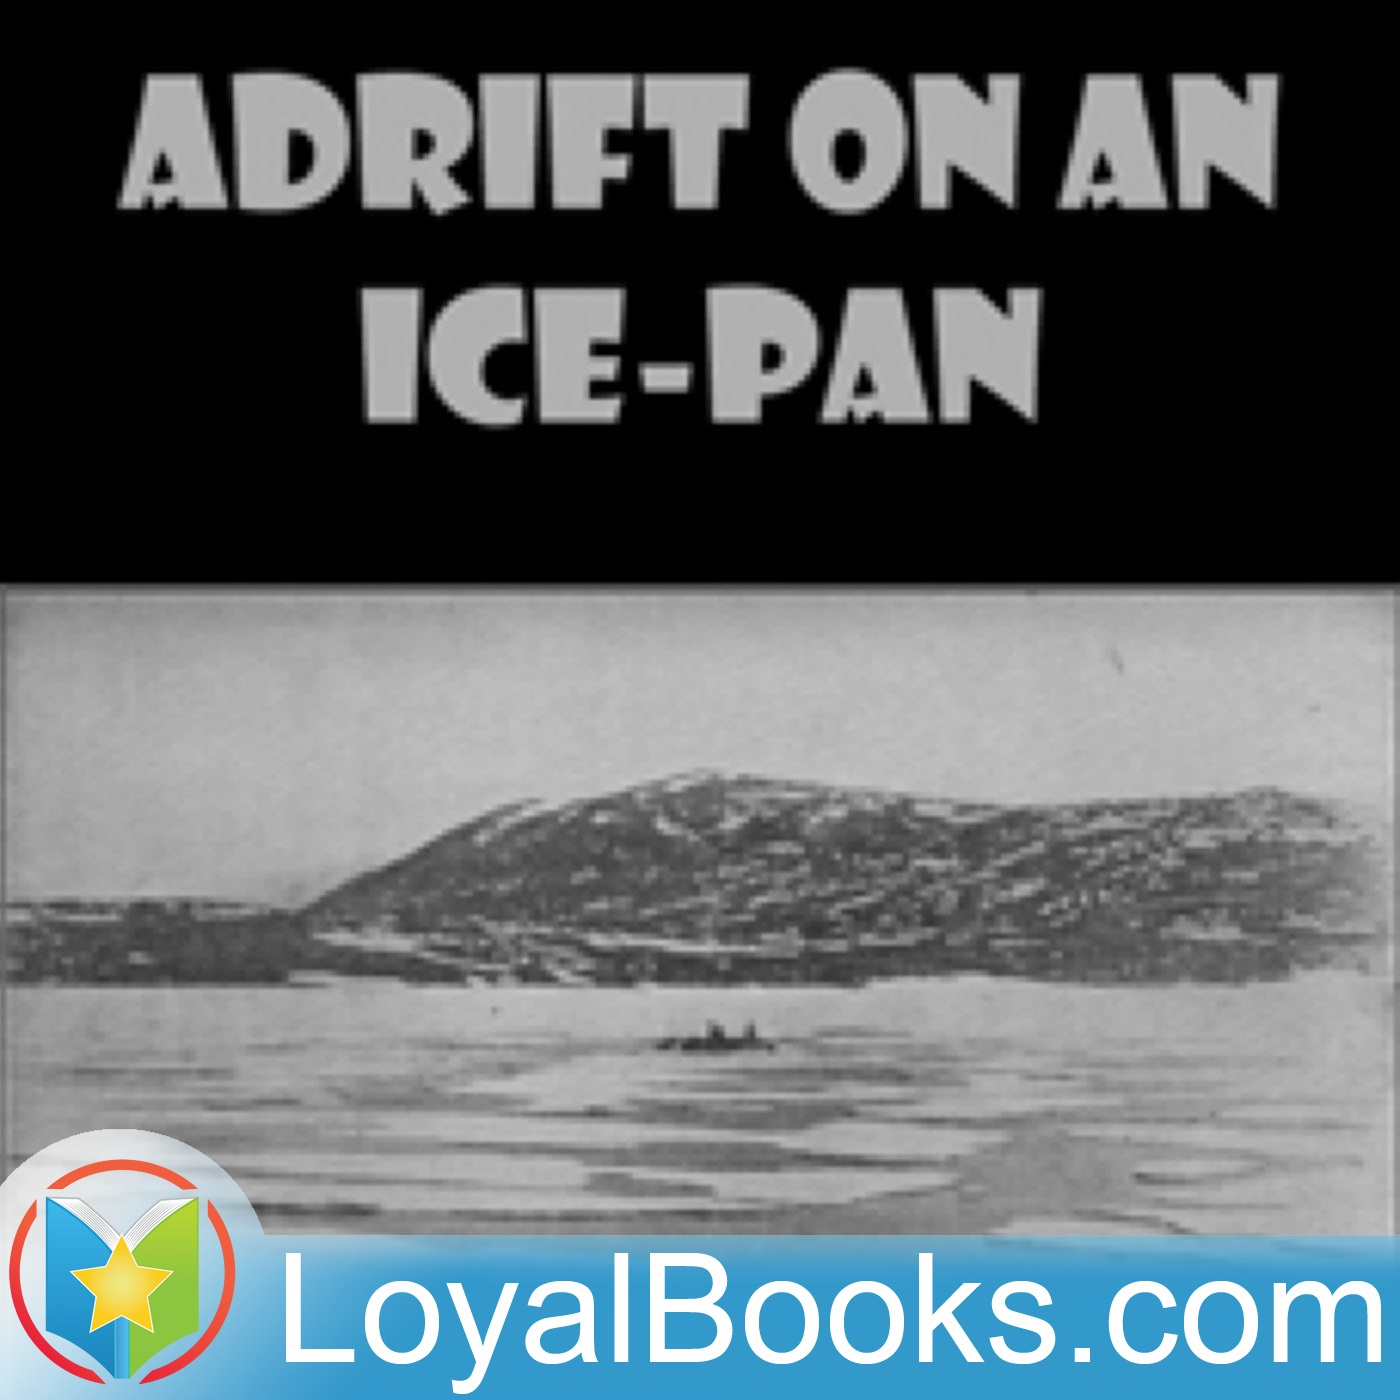 <![CDATA[Adrift on an Ice-Pan by Sir Wilfred Grenfell]]>